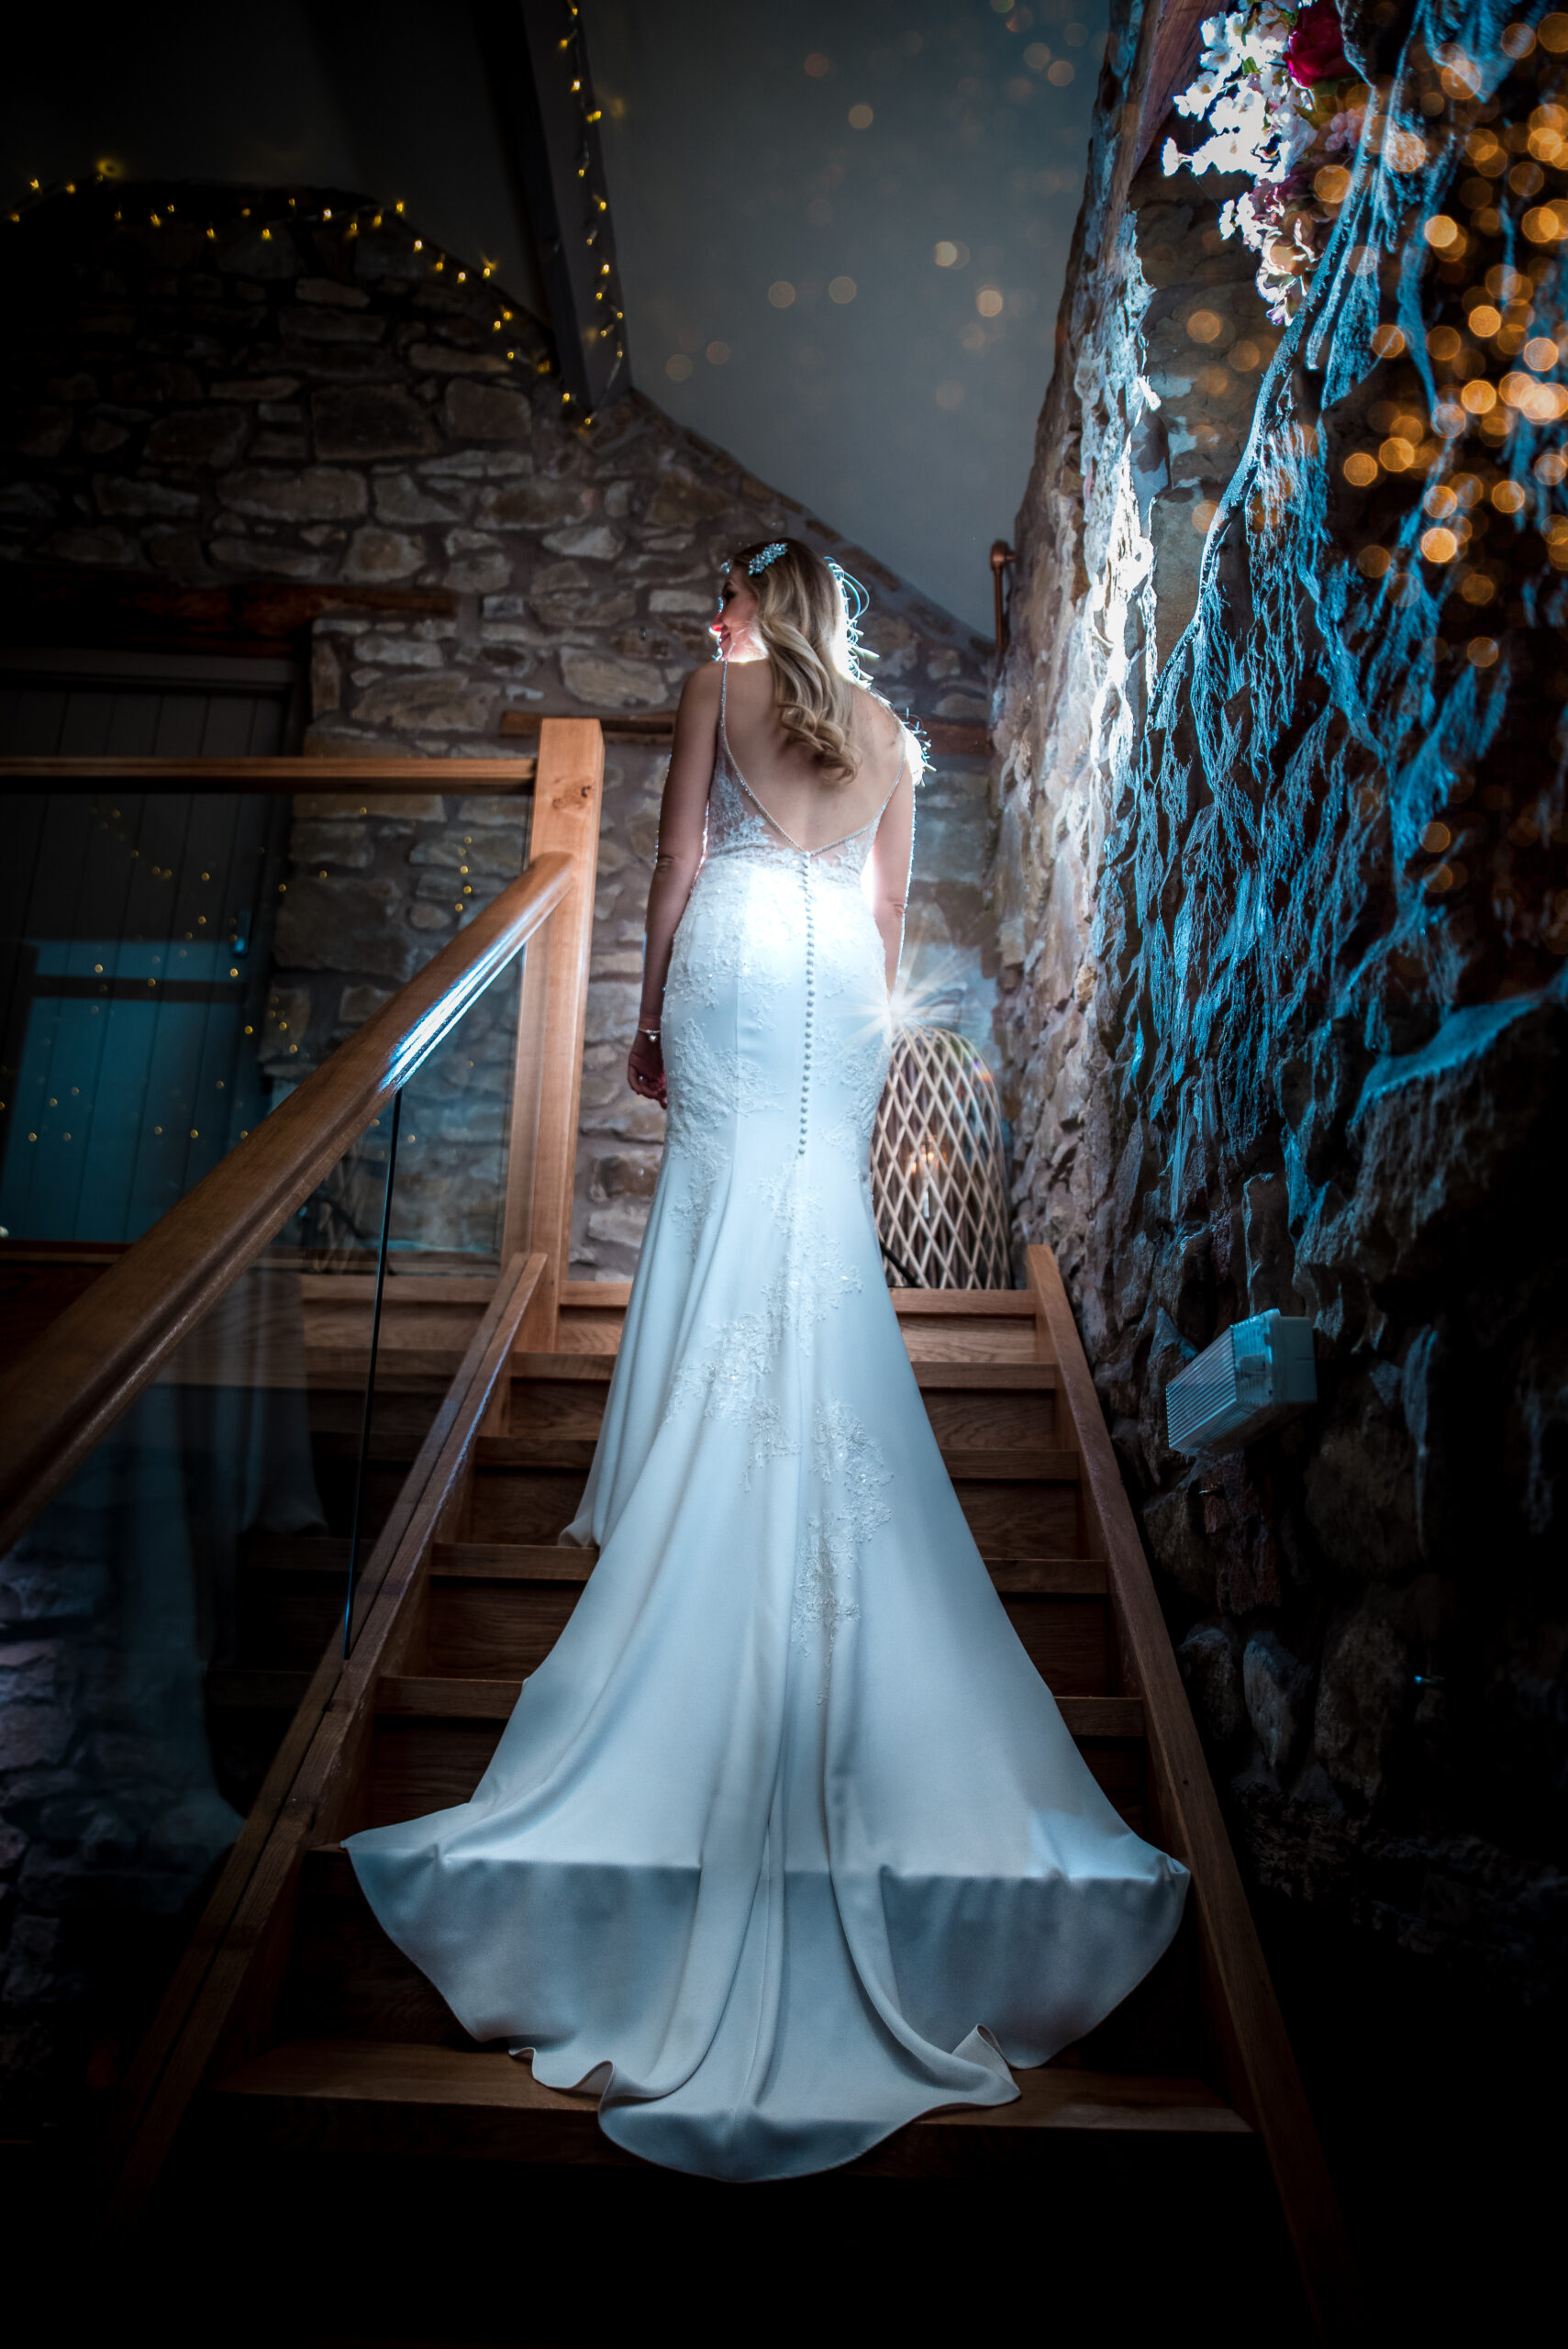 bride in white bridal gown with long train standing on the oak-framed stairs - indoor ceremony room - Tower Hill Barns - rustic lighting